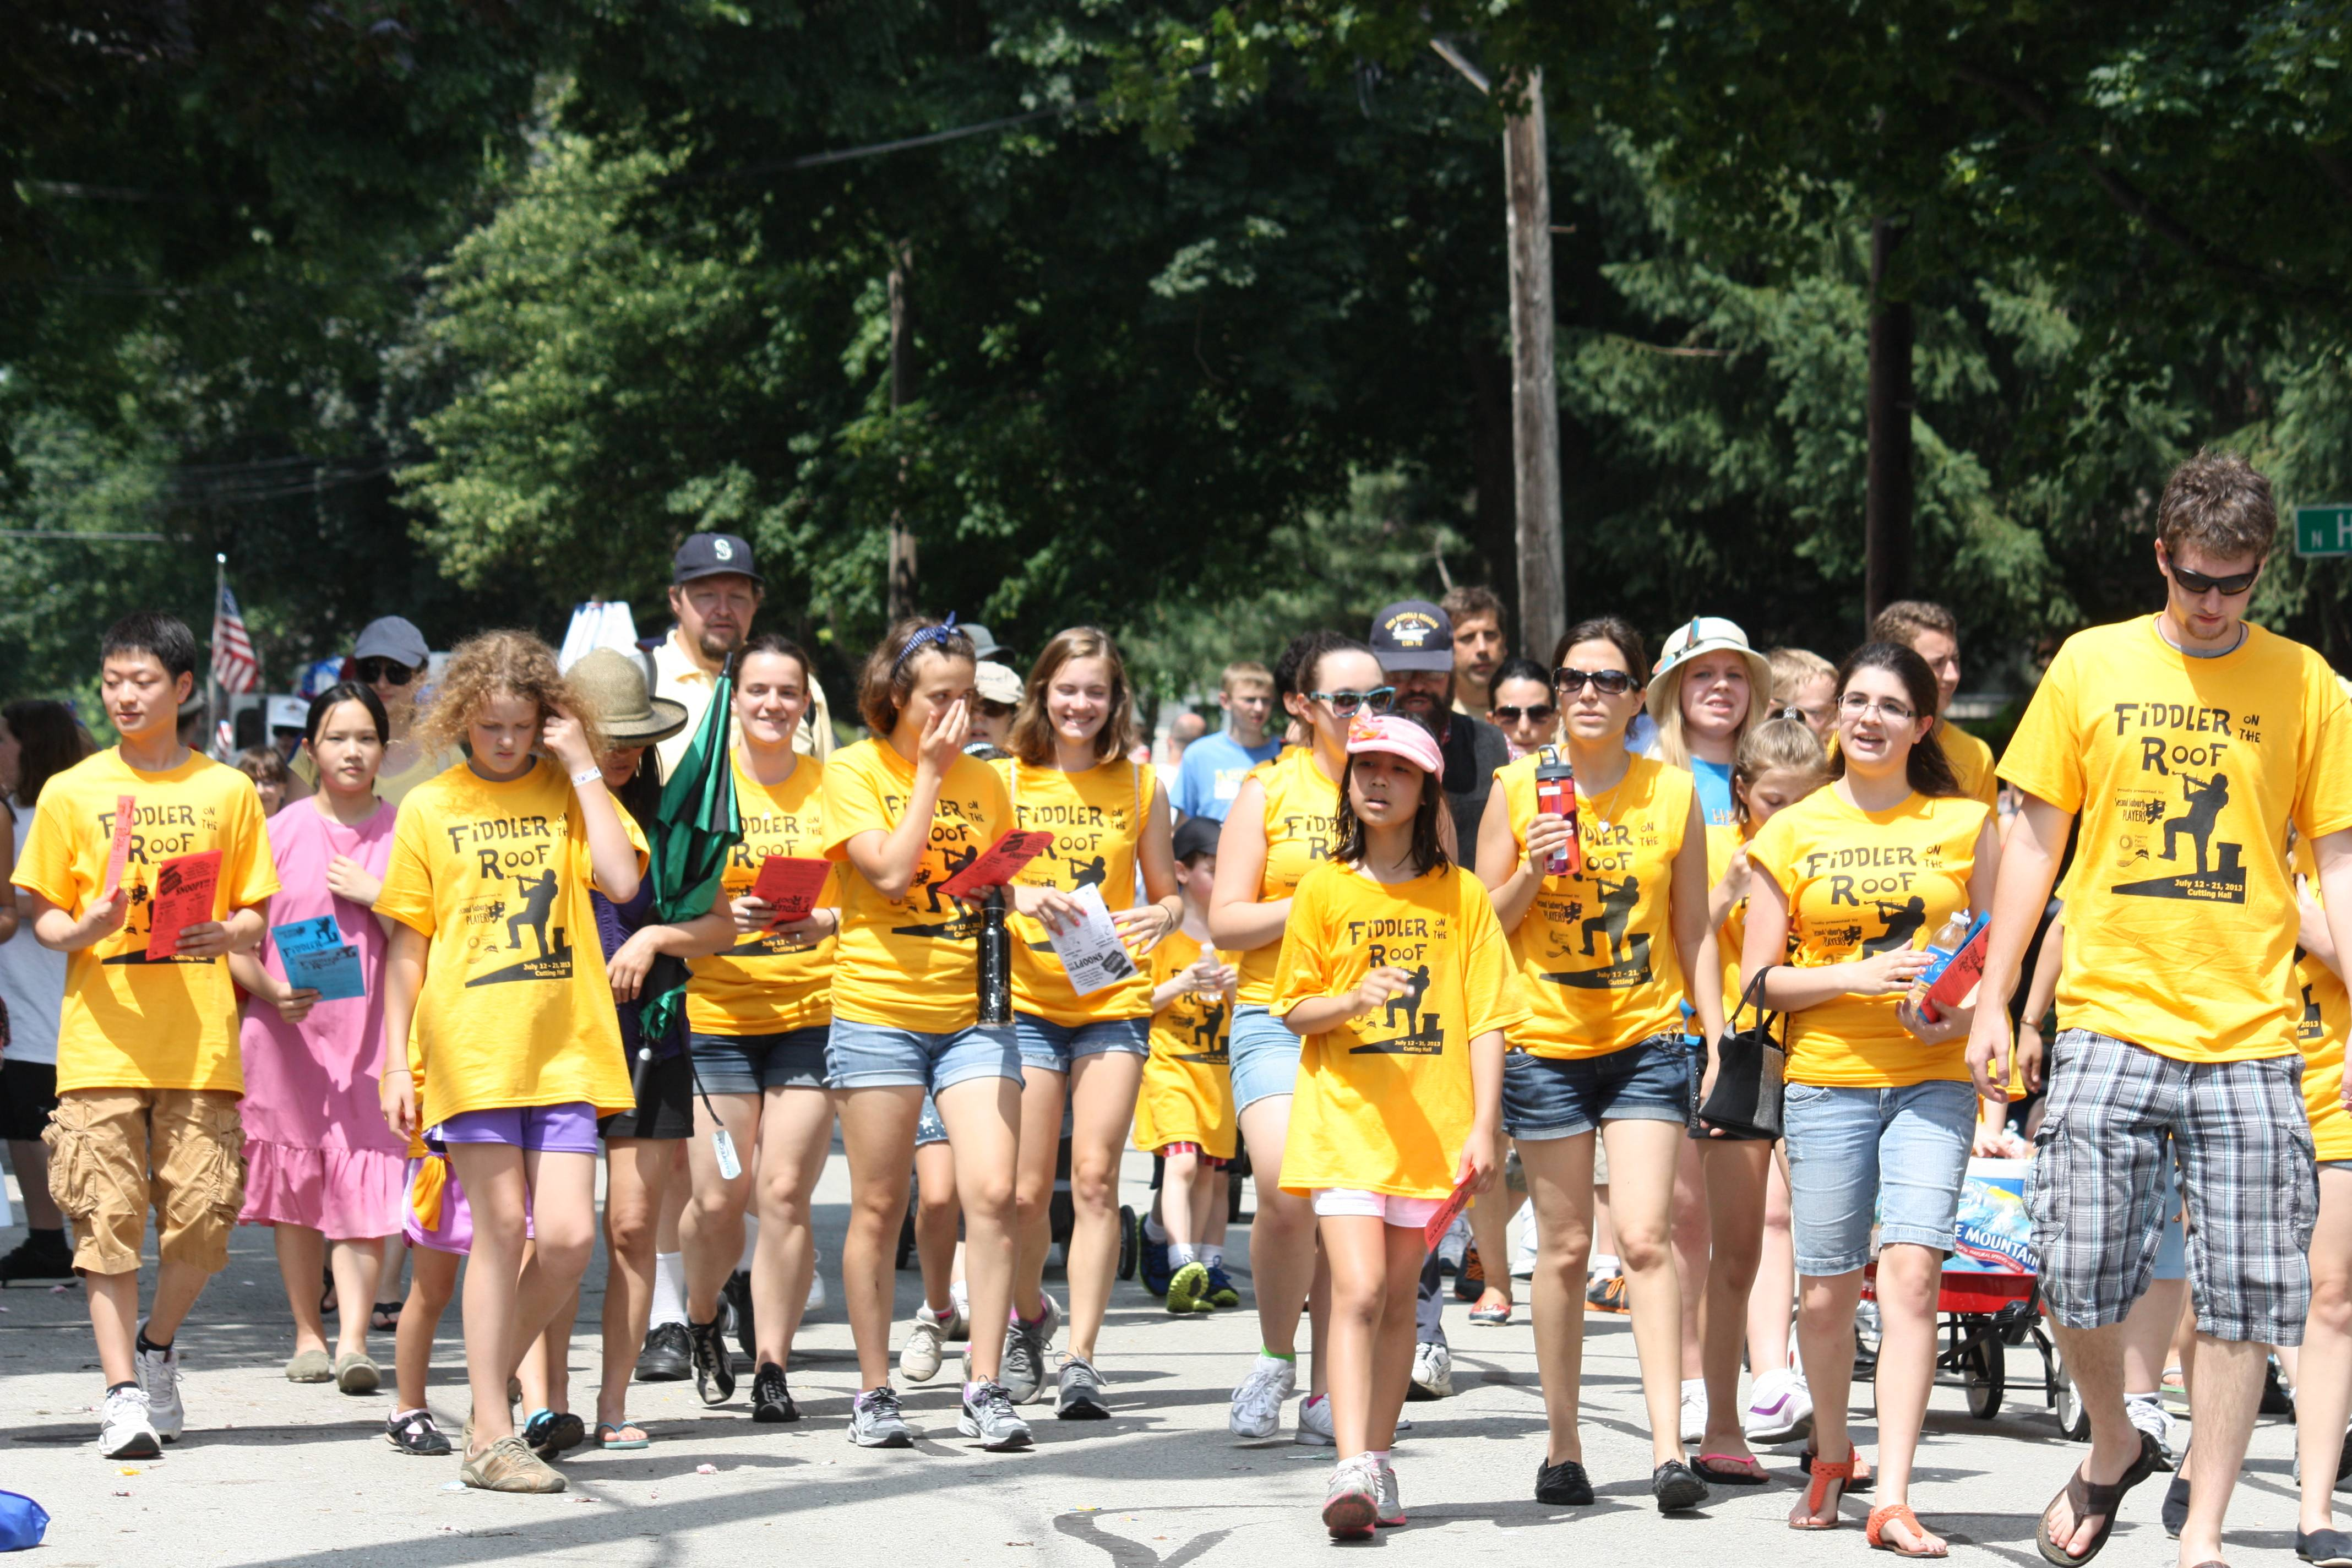 Cast and crew of Fiddler on the Roof marched and sang in Palatine's Hometown Fest Parade on July 6.